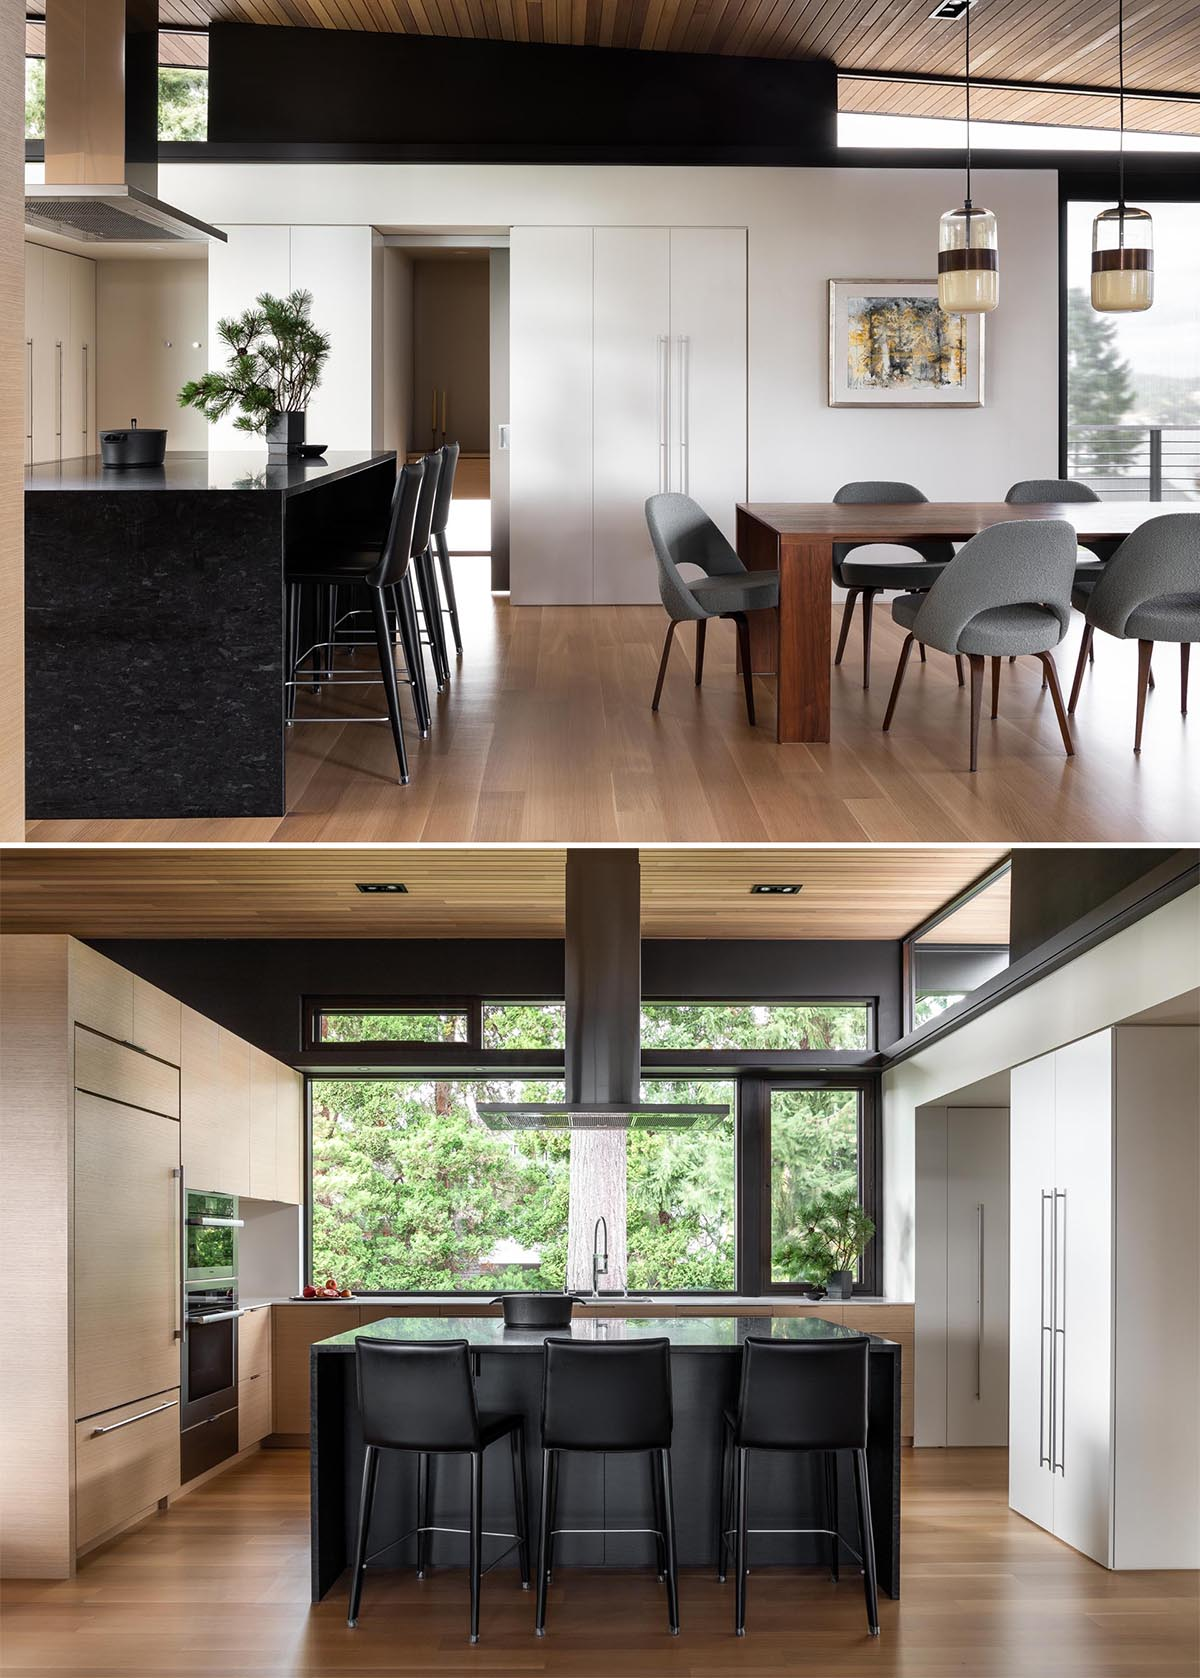 A modern kitchen with wood and white cabinets, and a black island.